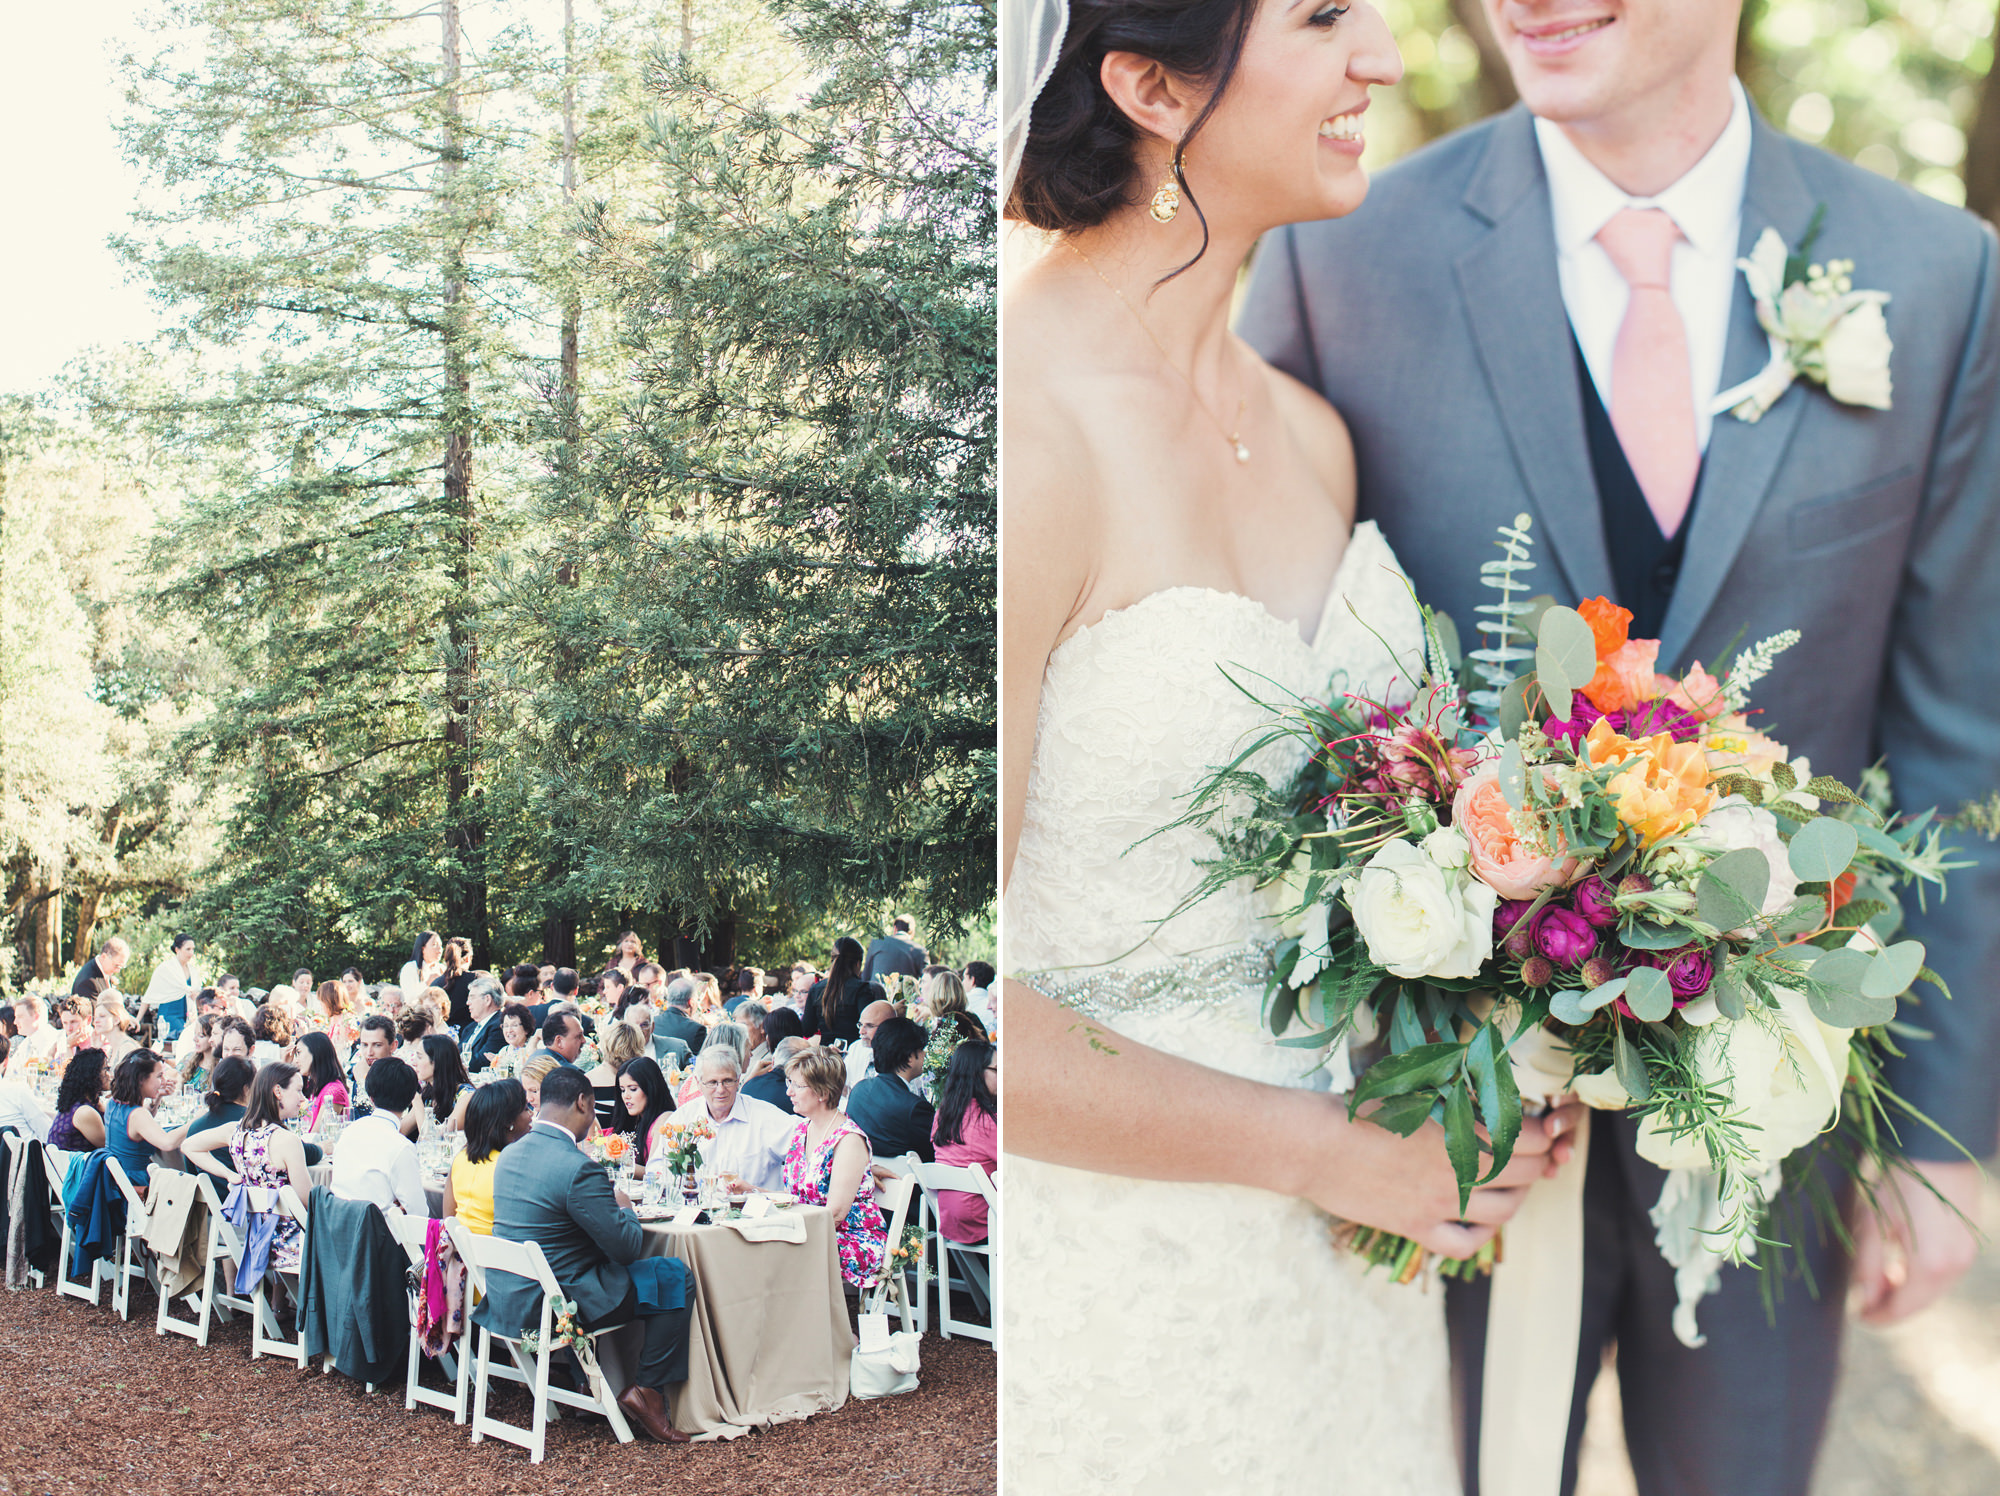 Backyard Wedding in California©Anne-Claire Brun 0022